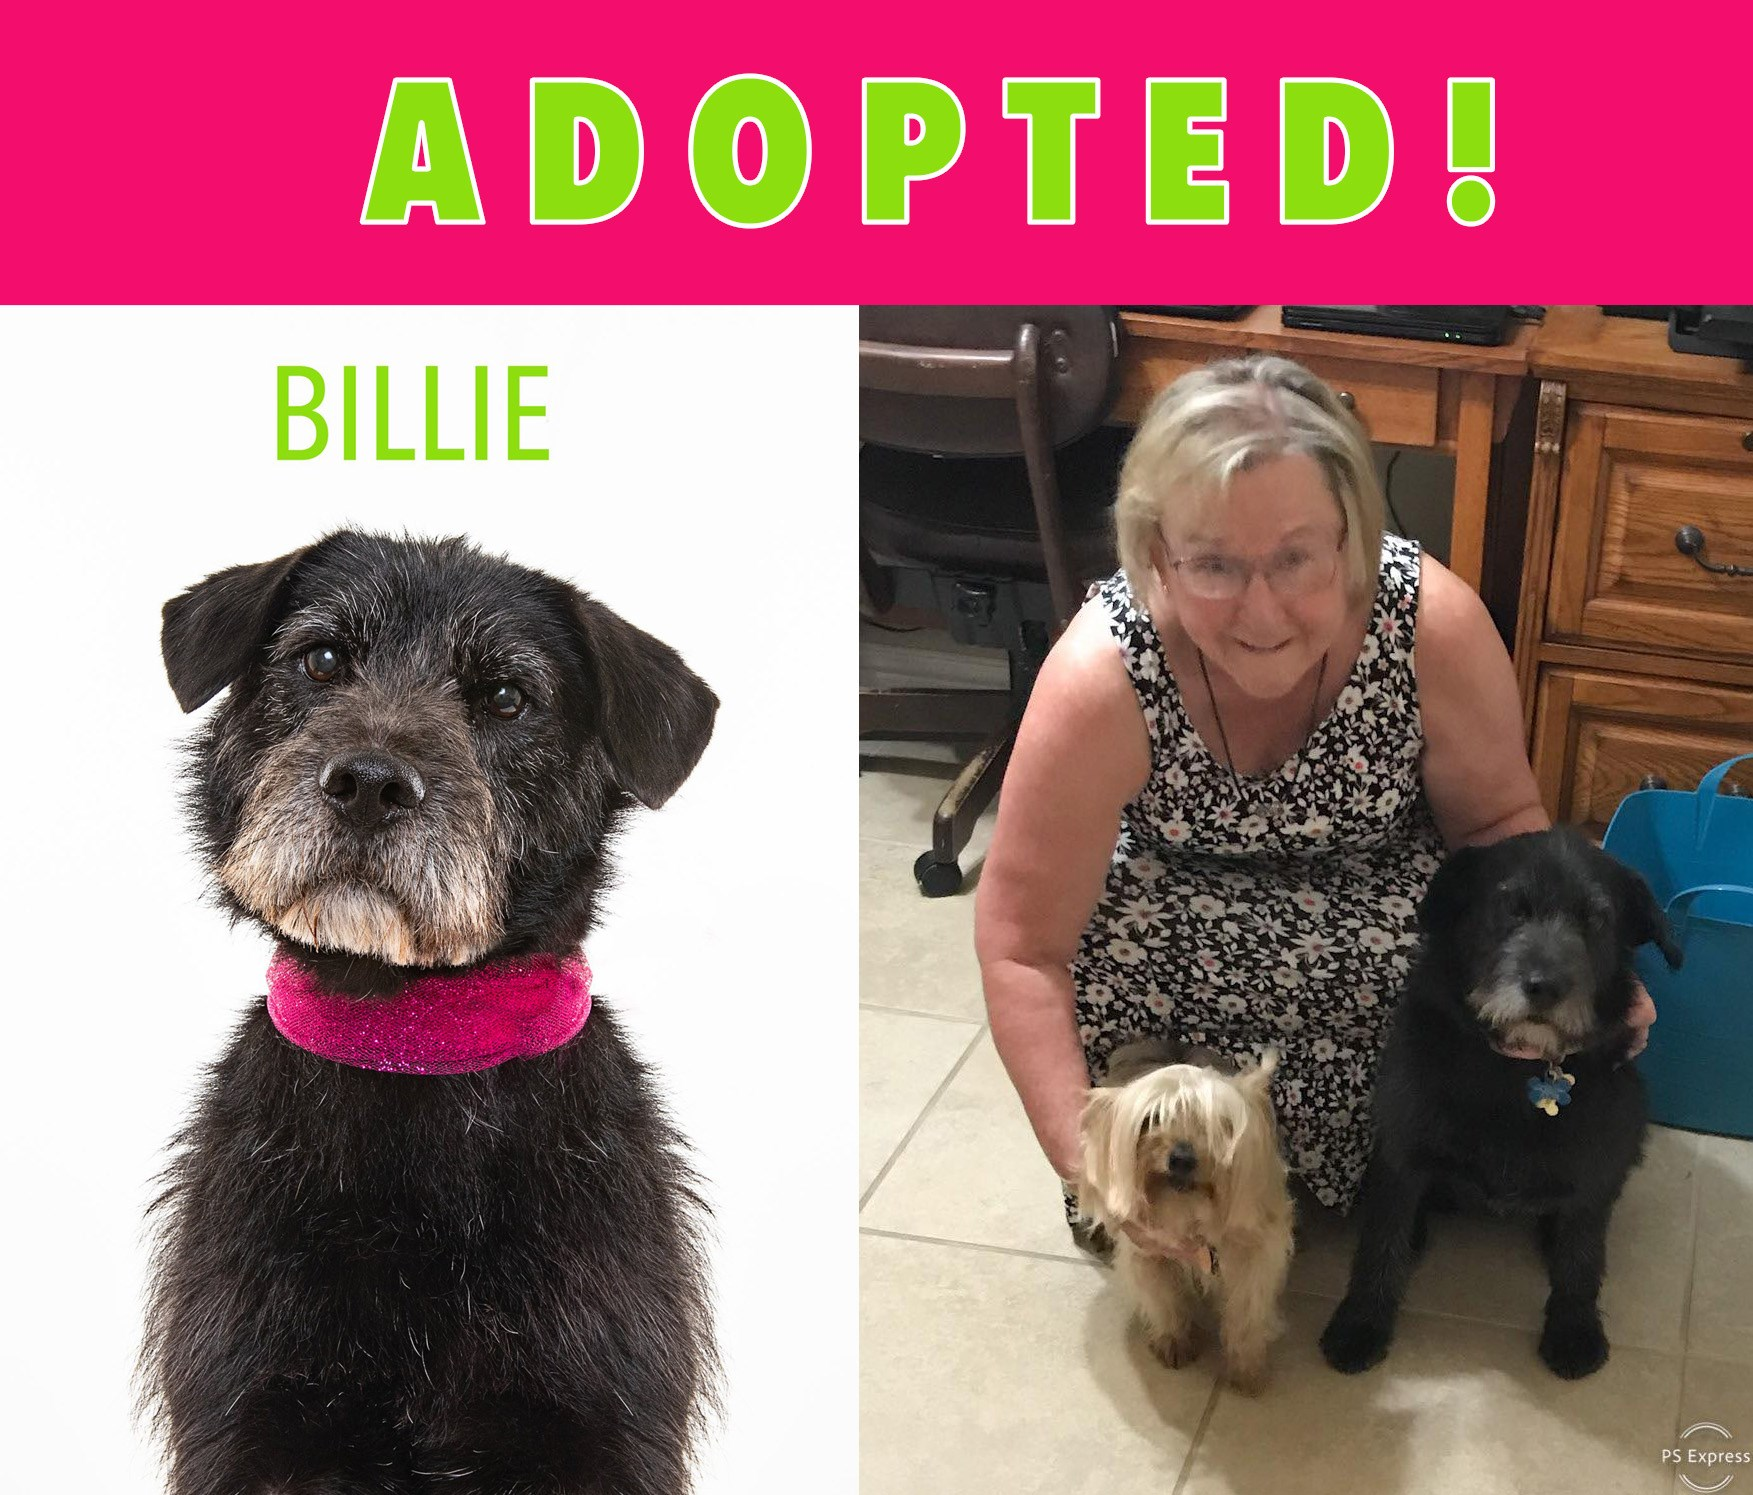 Billie Adopted.jpg